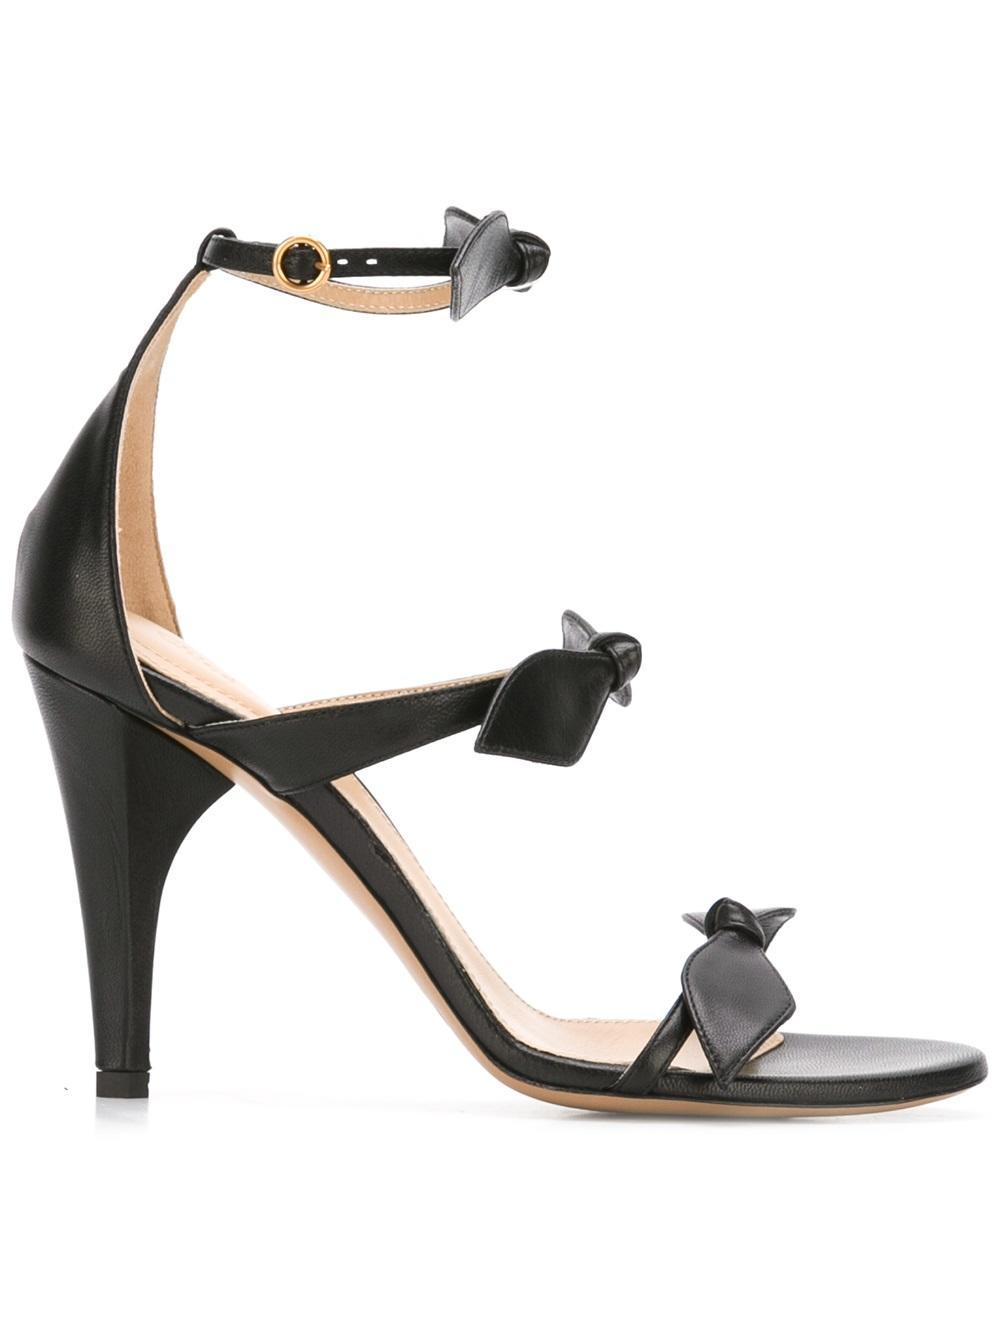 Chlo 233 Mike Sandals In Black Lyst